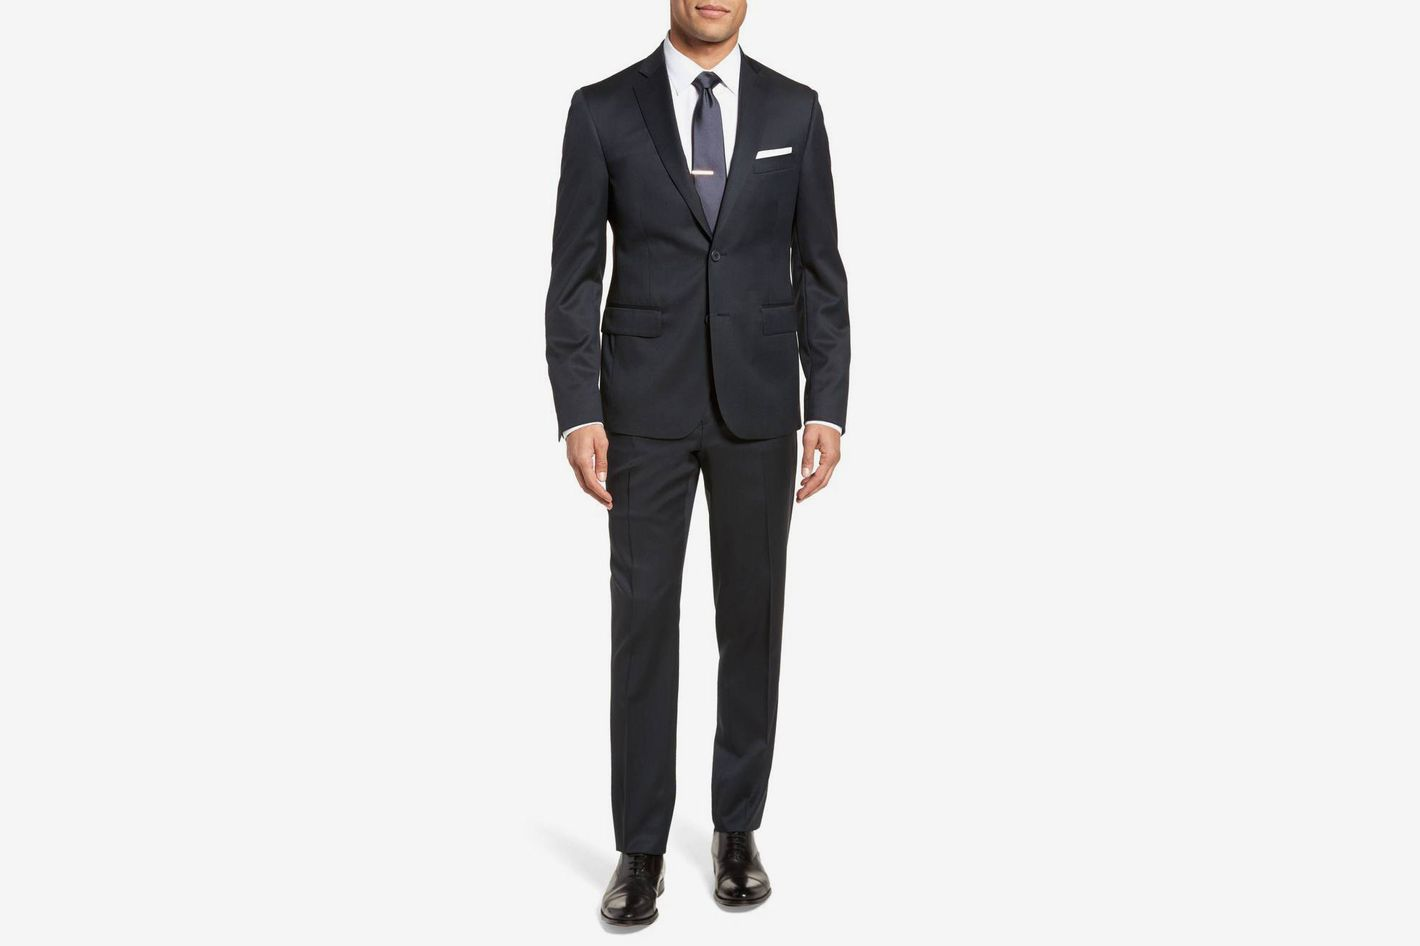 Extra Trim Fit Solid Wool Suit